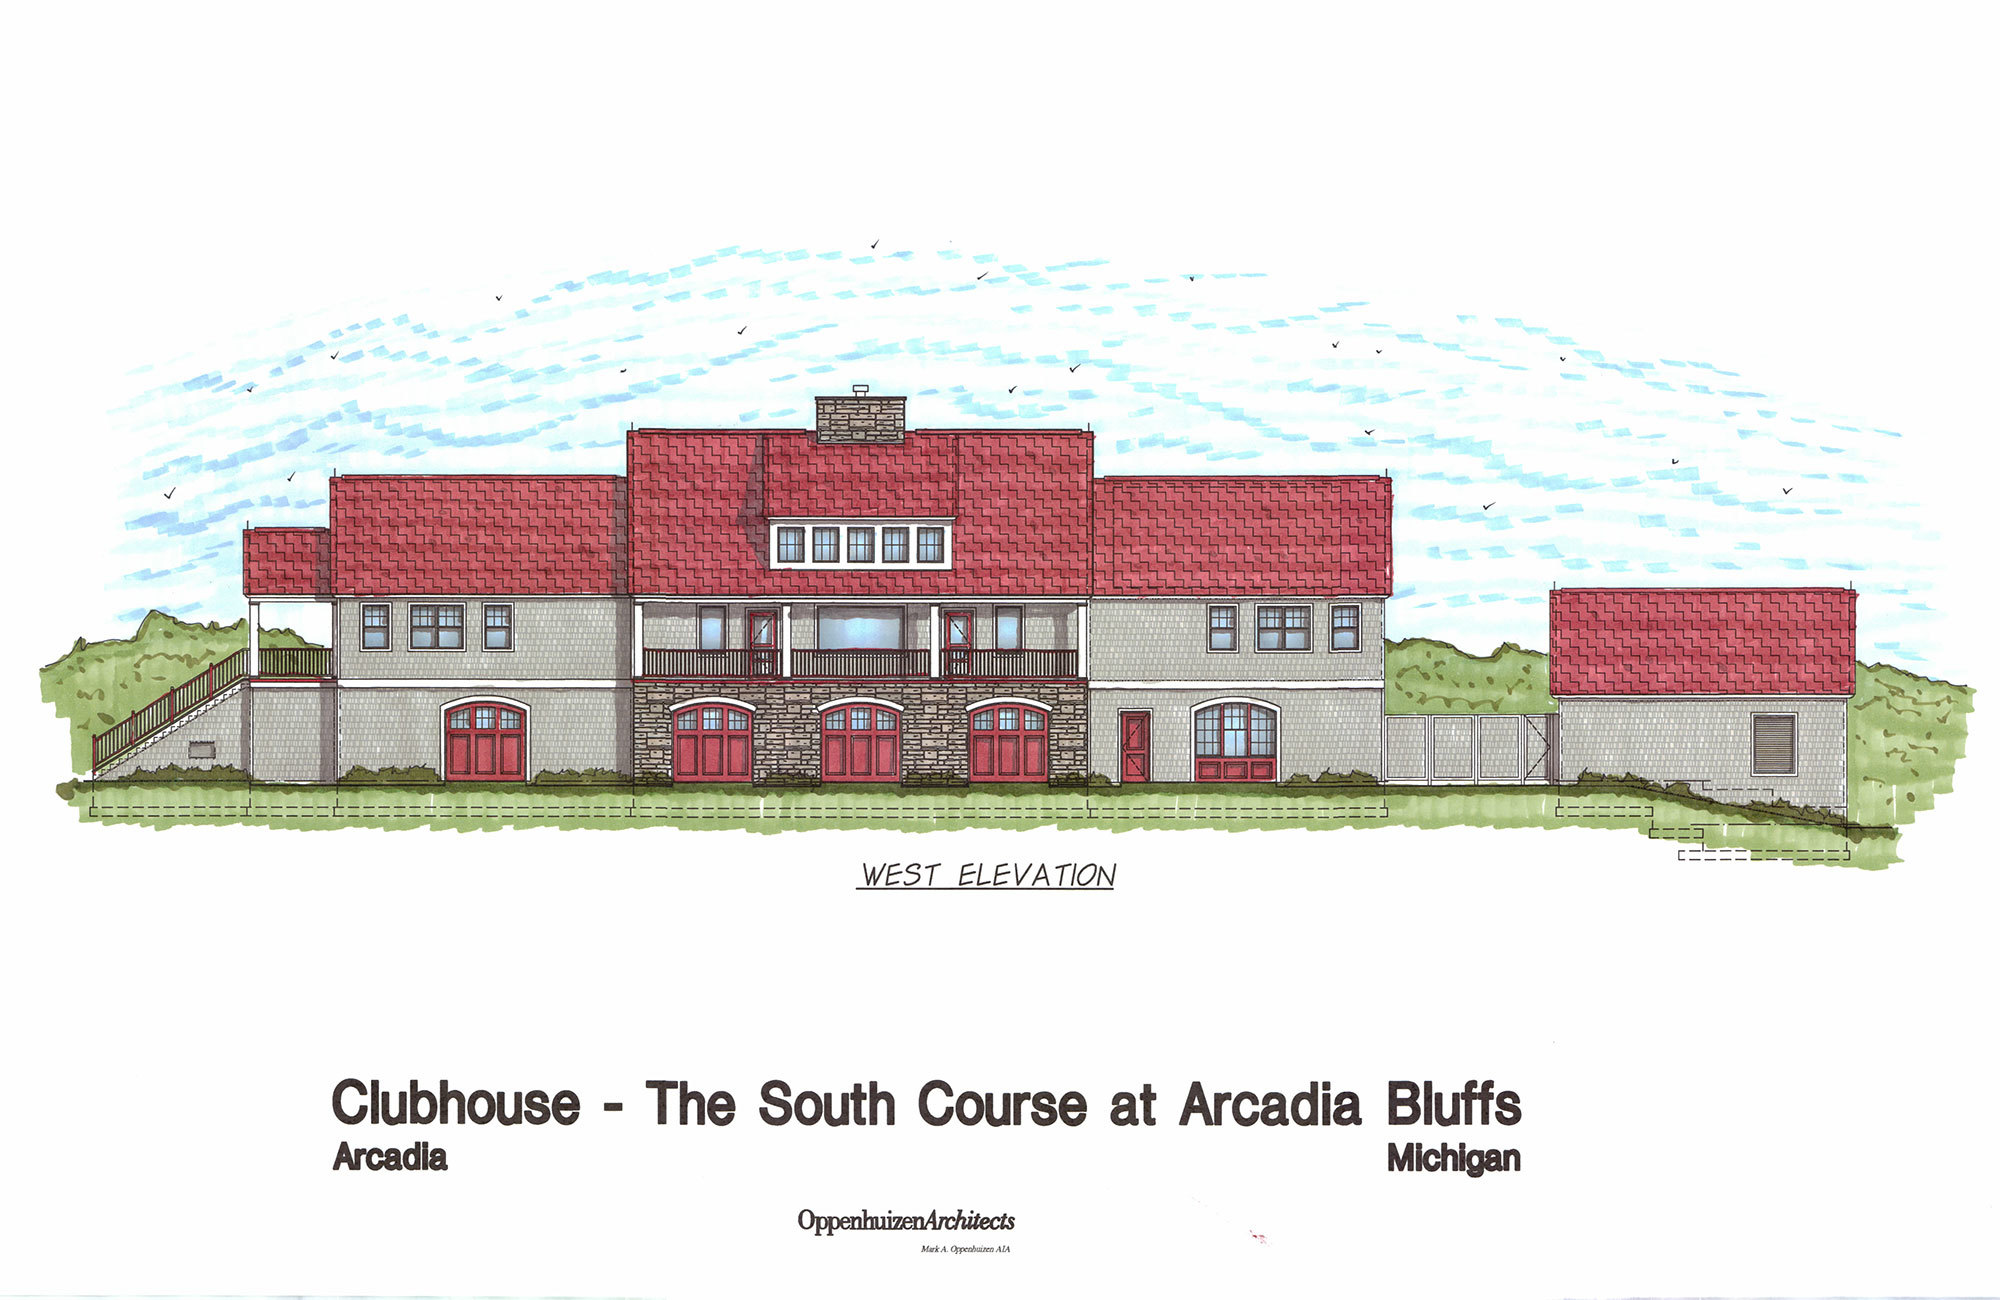 SC-Clubhouse-Rendering-11-16-18.jpg#asset:871